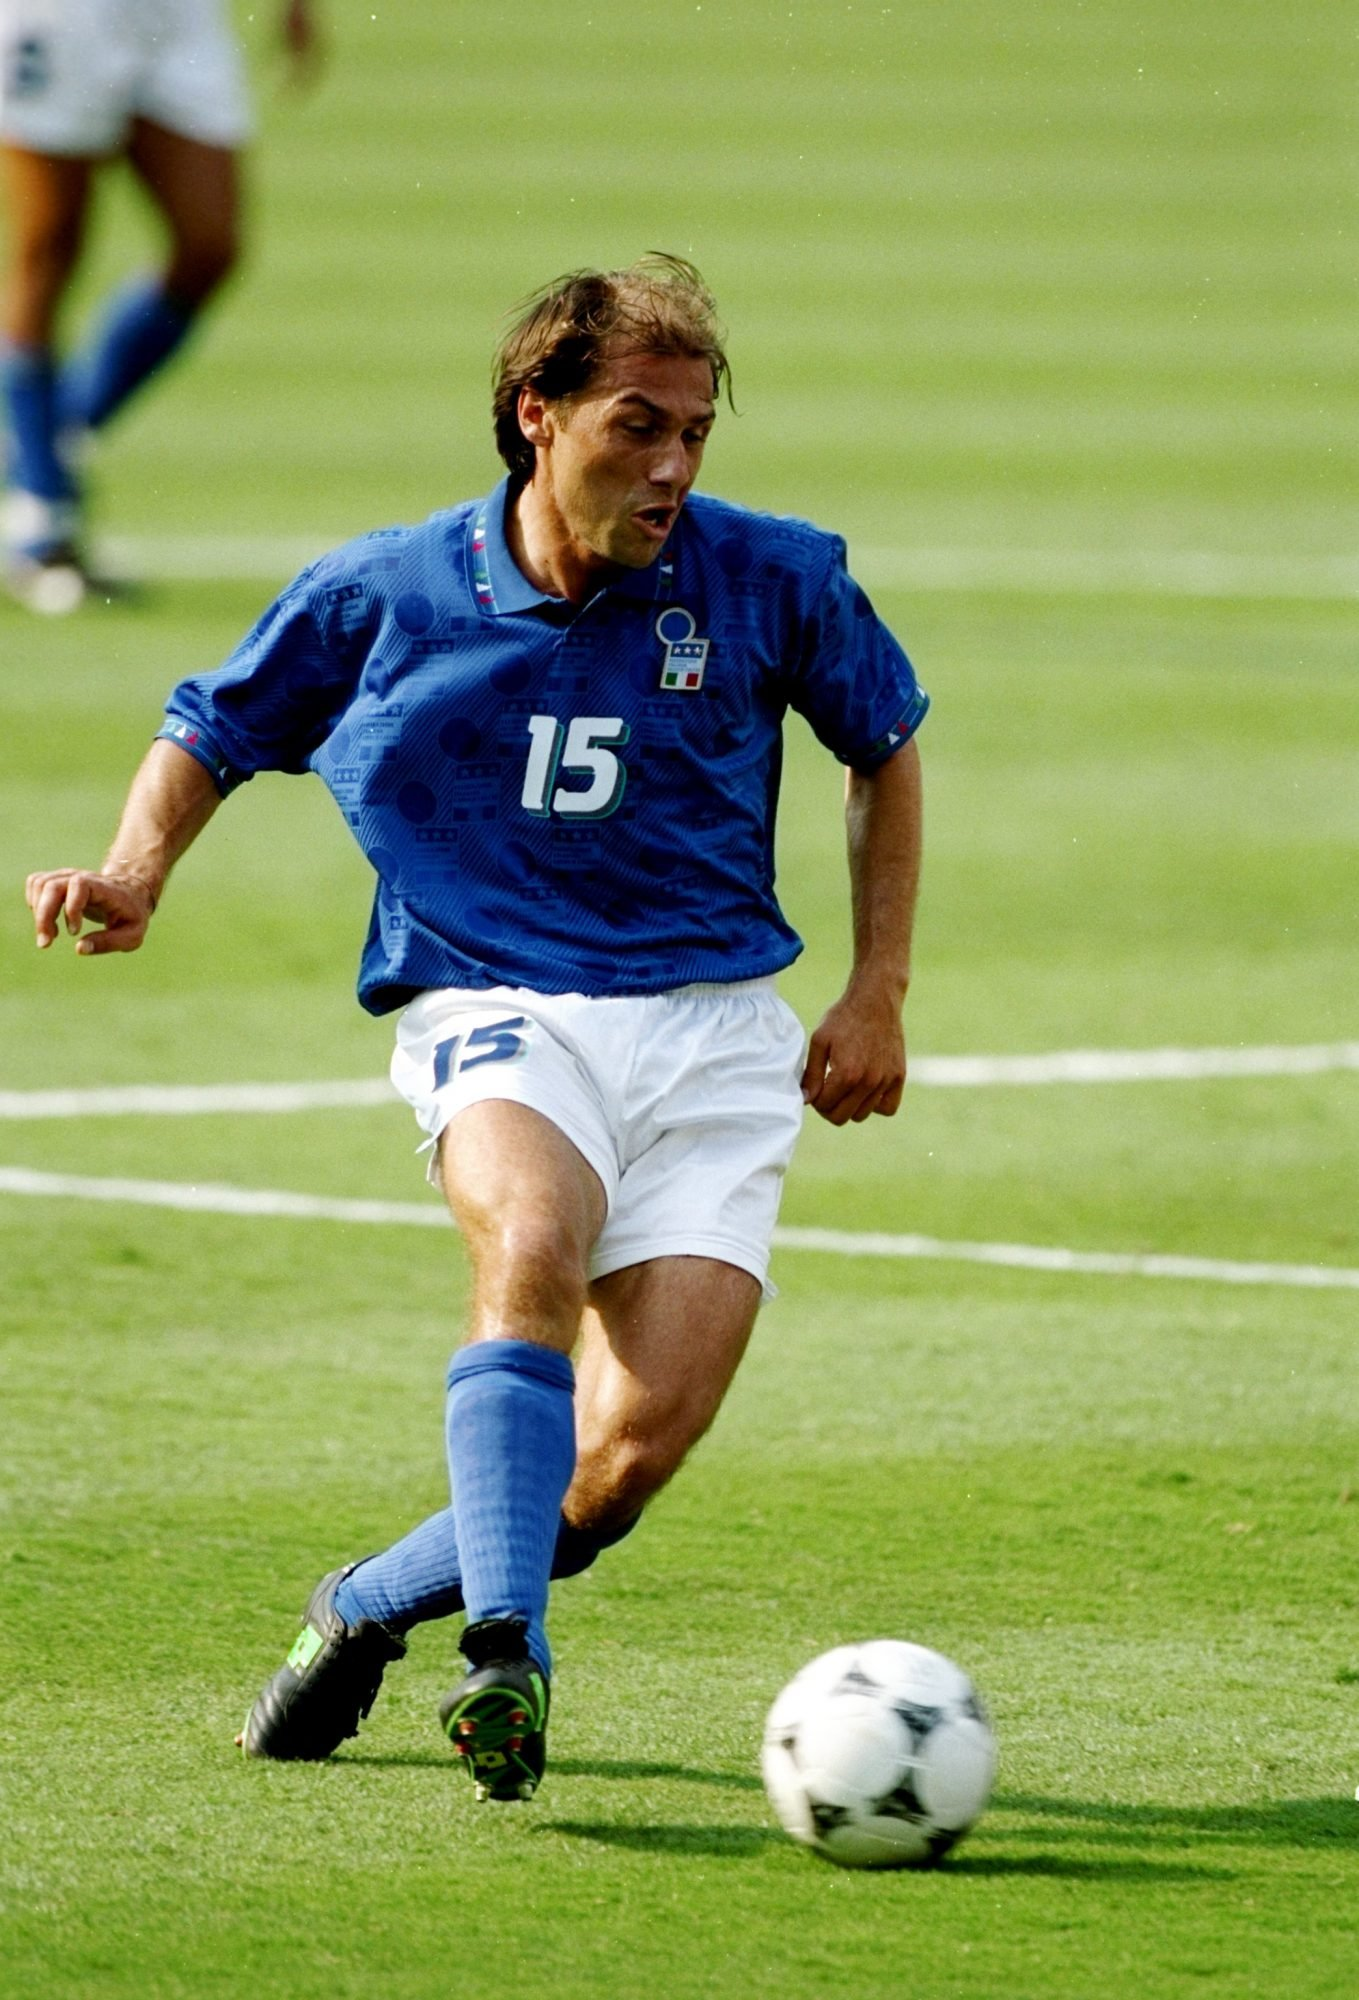 13 Jul 1994: Antonio Conte of Italy in action during the World Cup semi-final against Bulgaria at the Giants Stadium in New York. Italy won the match 2-1. Mandatory Credit: Mike Hewitt/Allsport